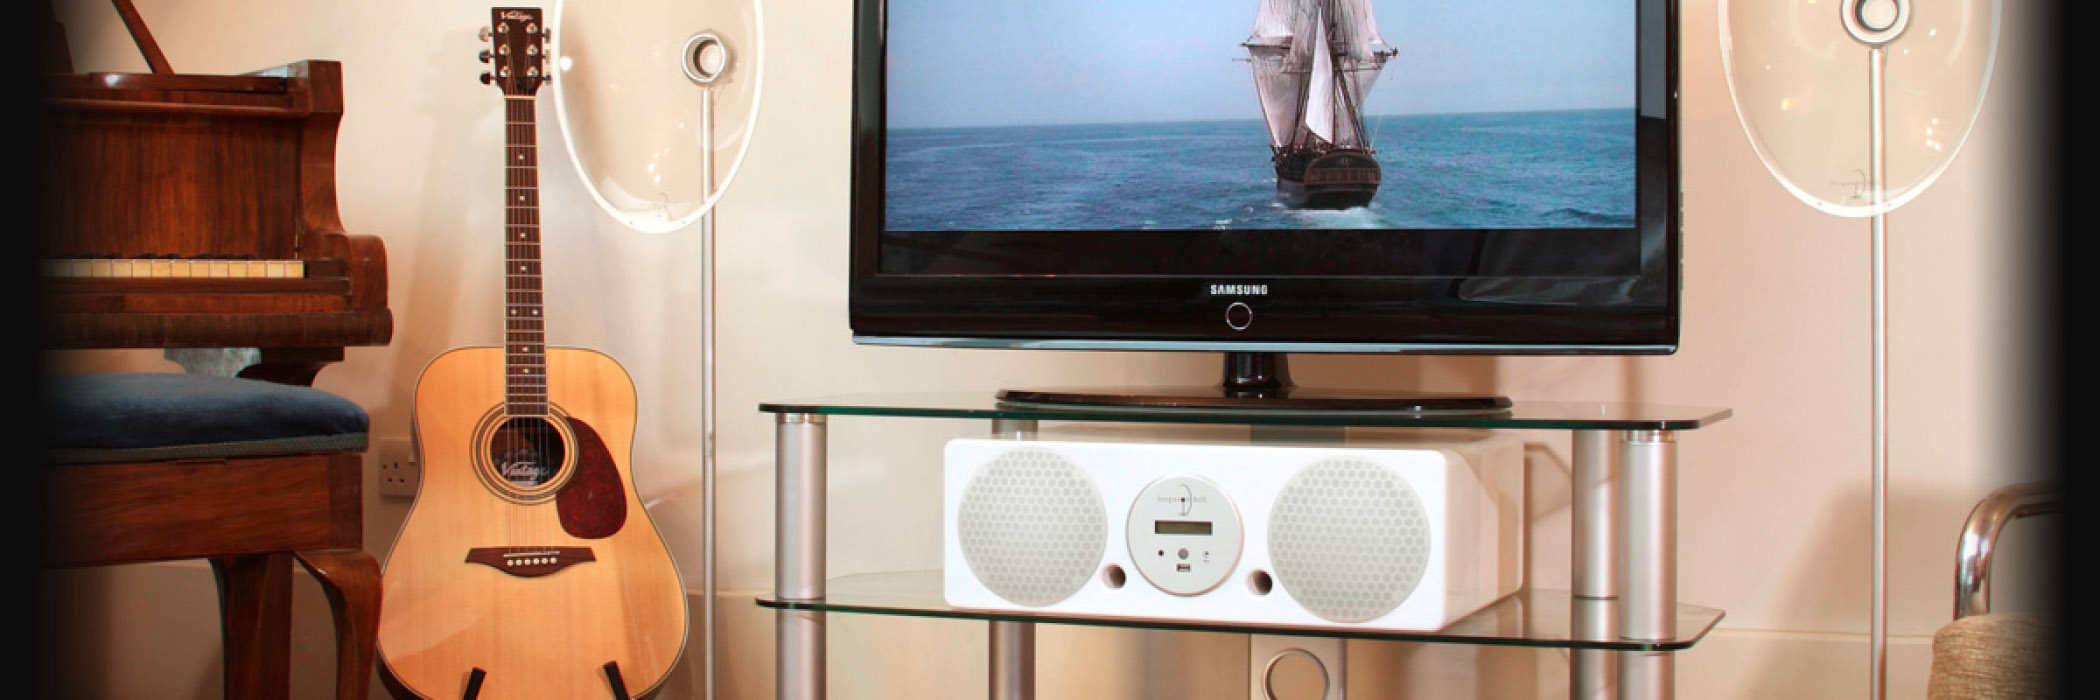 FHOO9 Home Theatre System